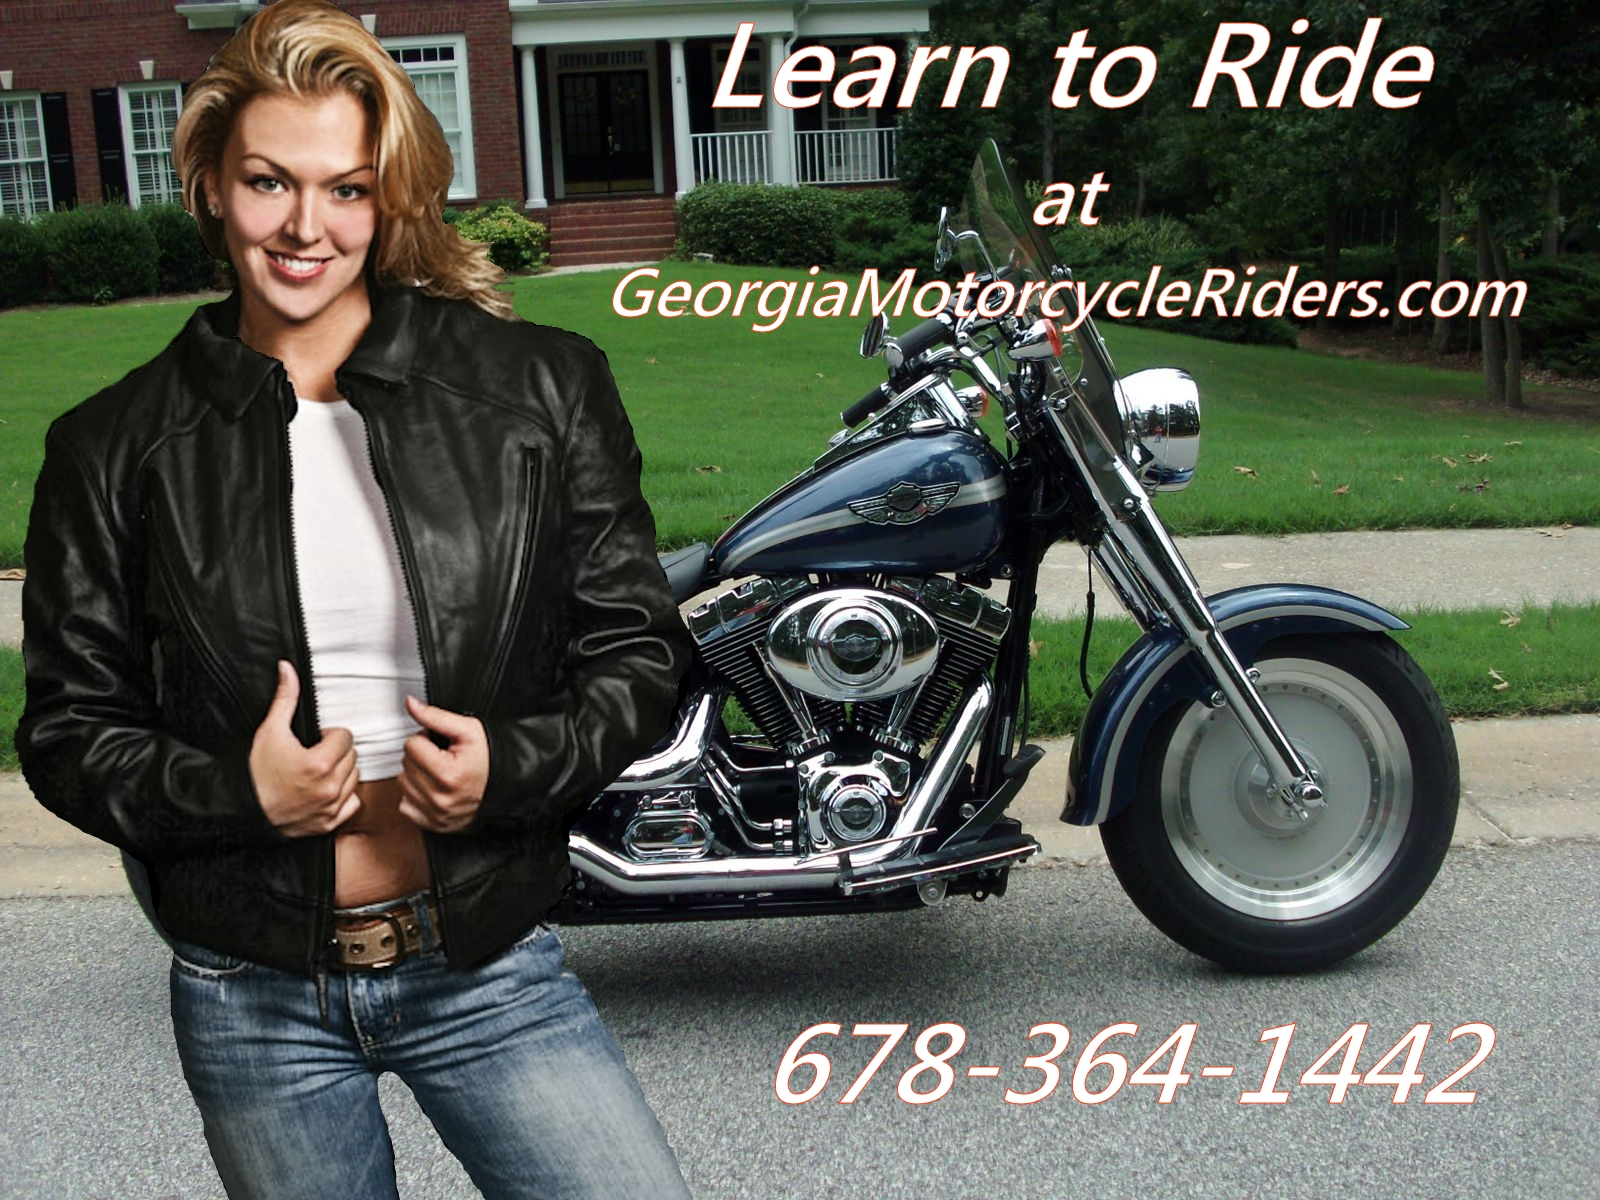 Motorcycle riding lessons learn to ride motorcycles earn your license xflitez Gallery